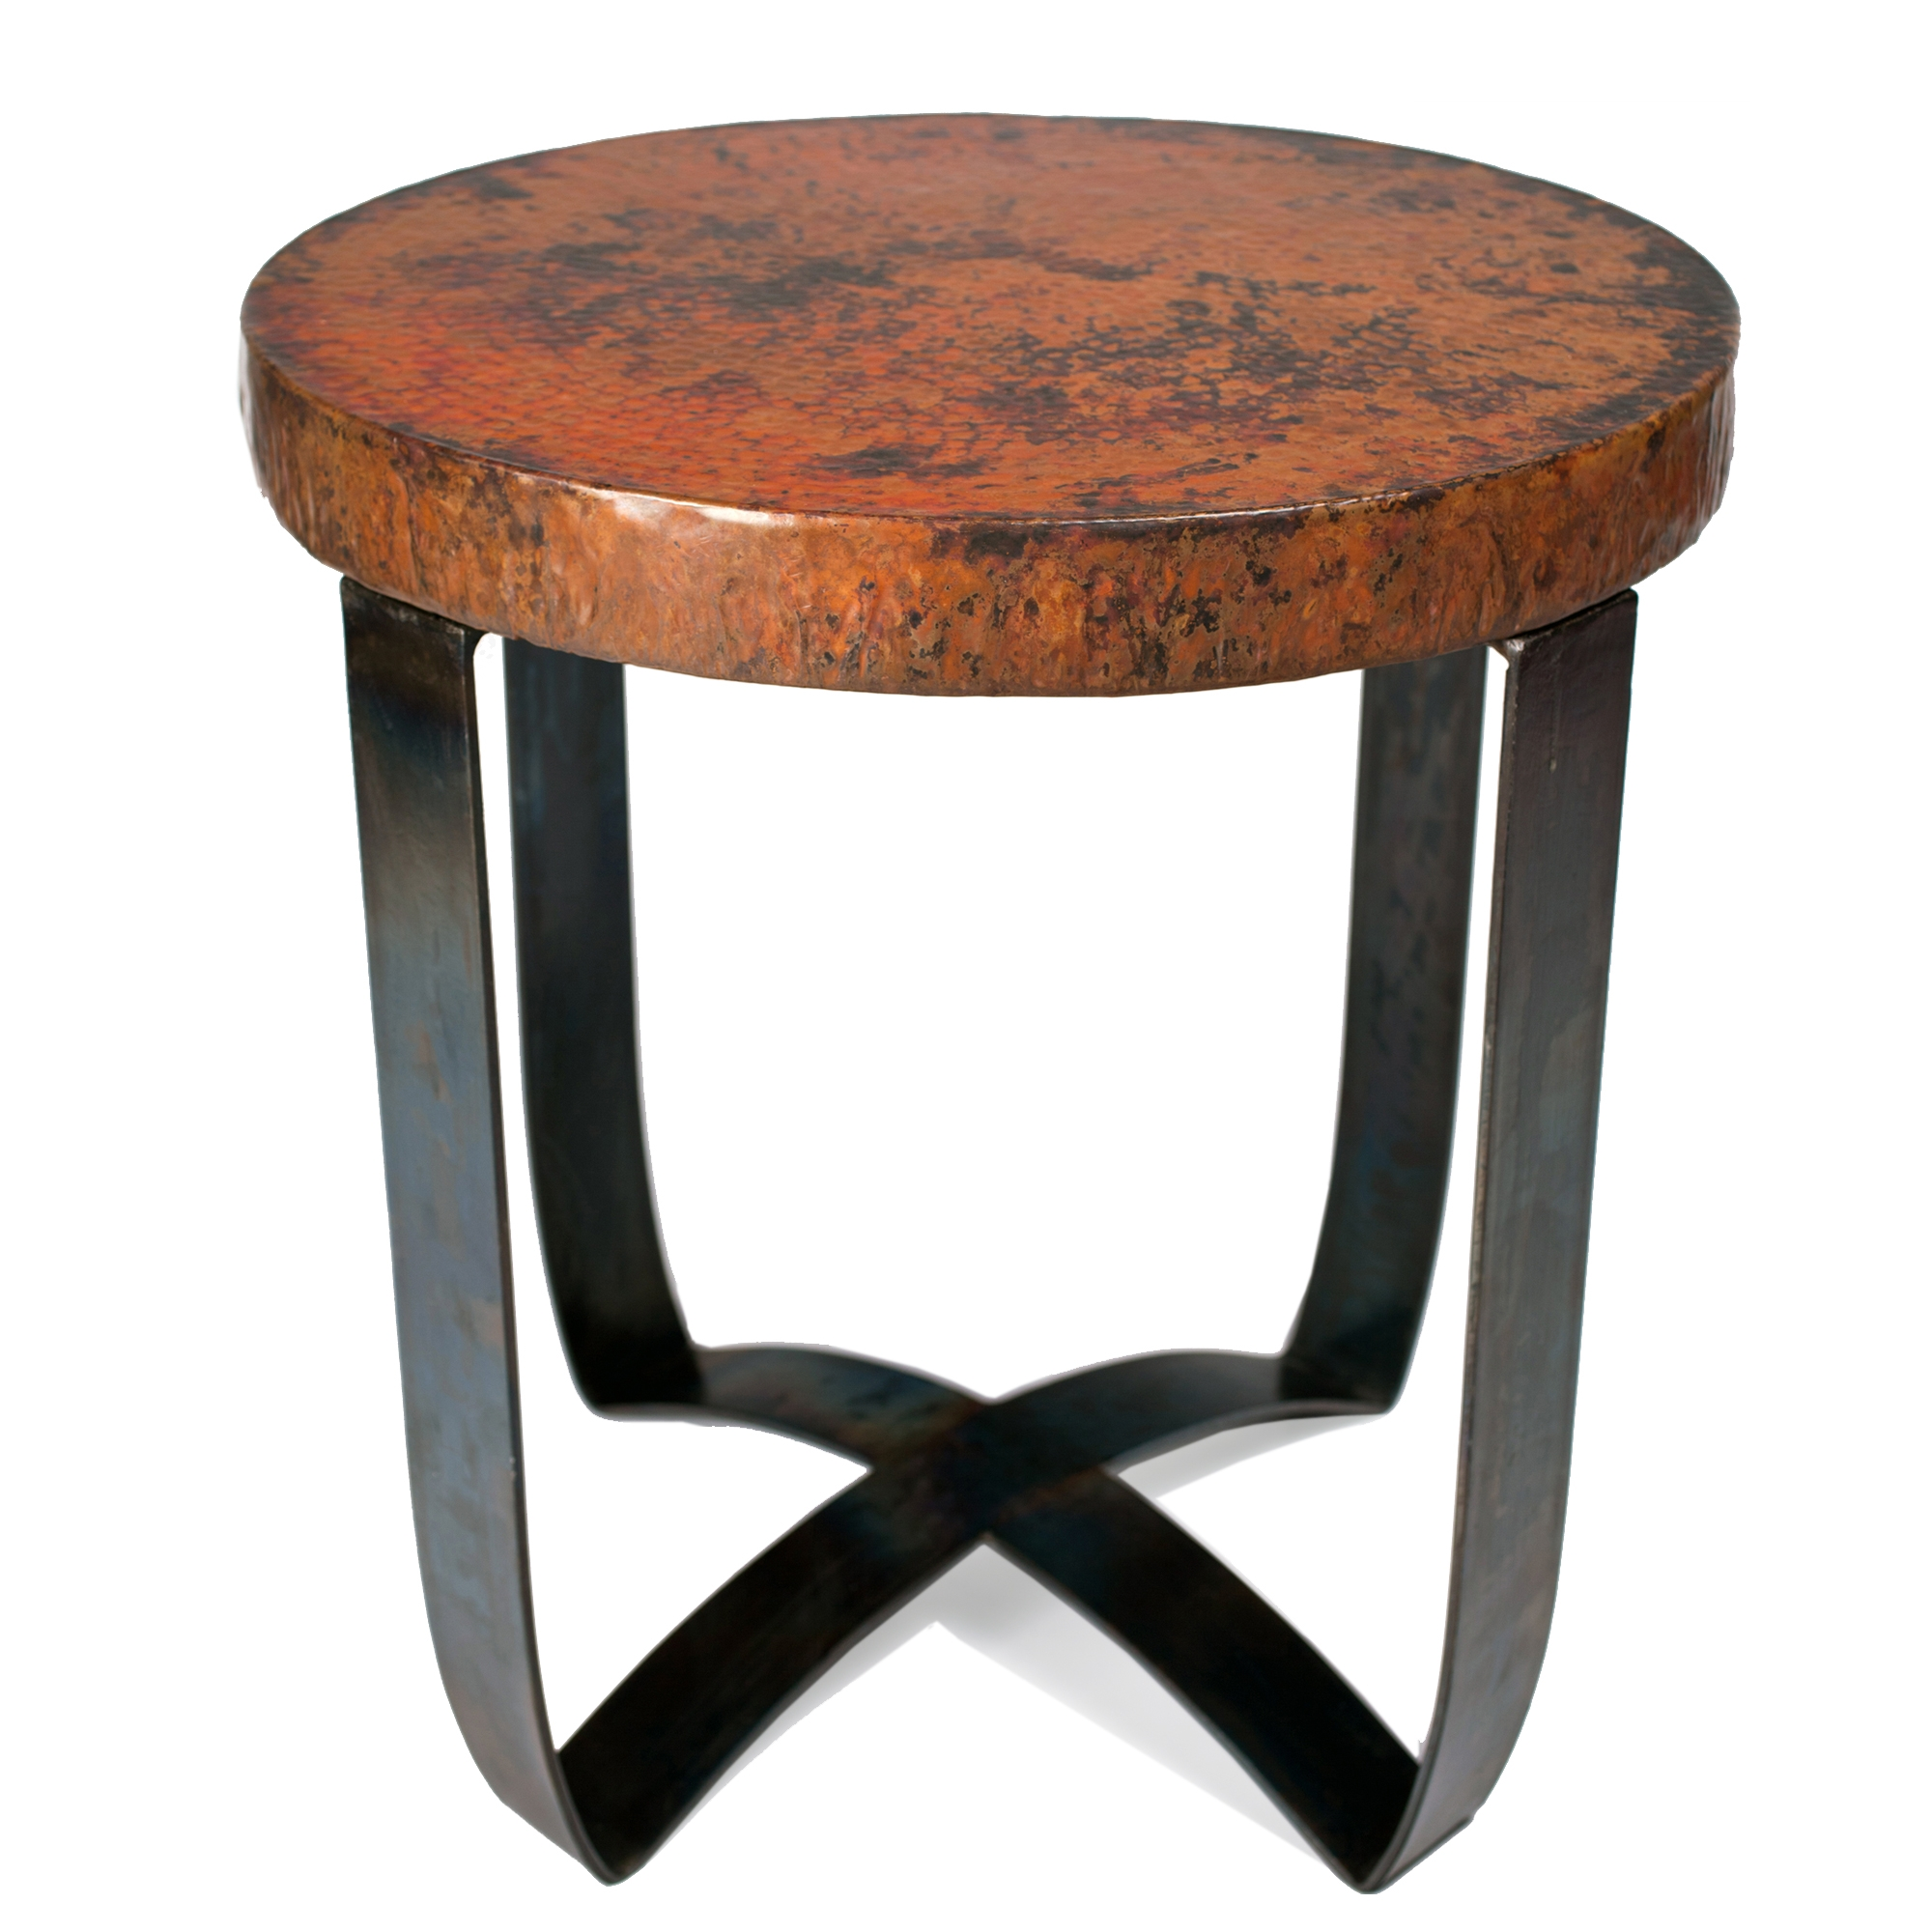 round strap end table with hammered copper top twi wrought iron patio accent small coffee designs hallway console outdoor folding narrow side concrete outside tables blue and